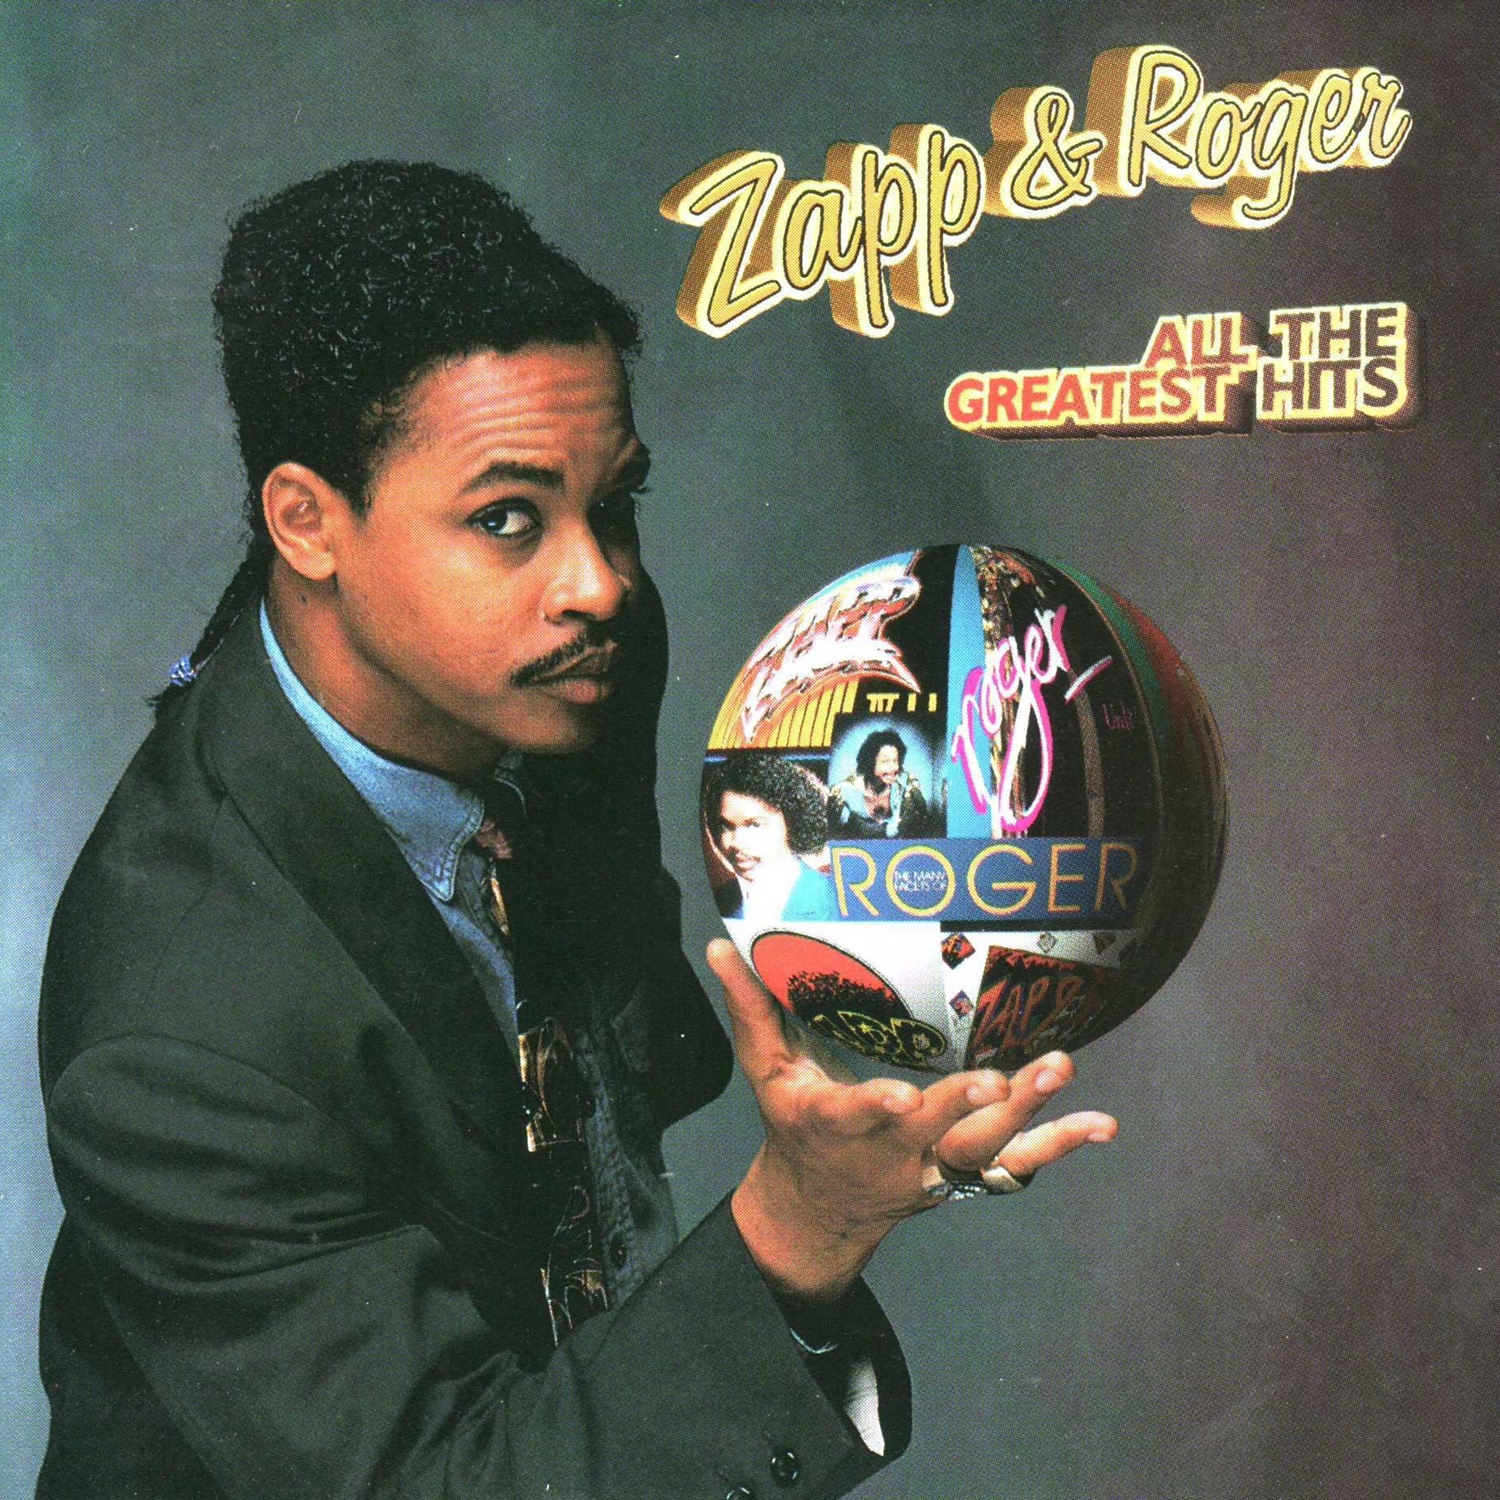 Zapp Amp Roger All The Greatest Hits O Som Dos Prado S